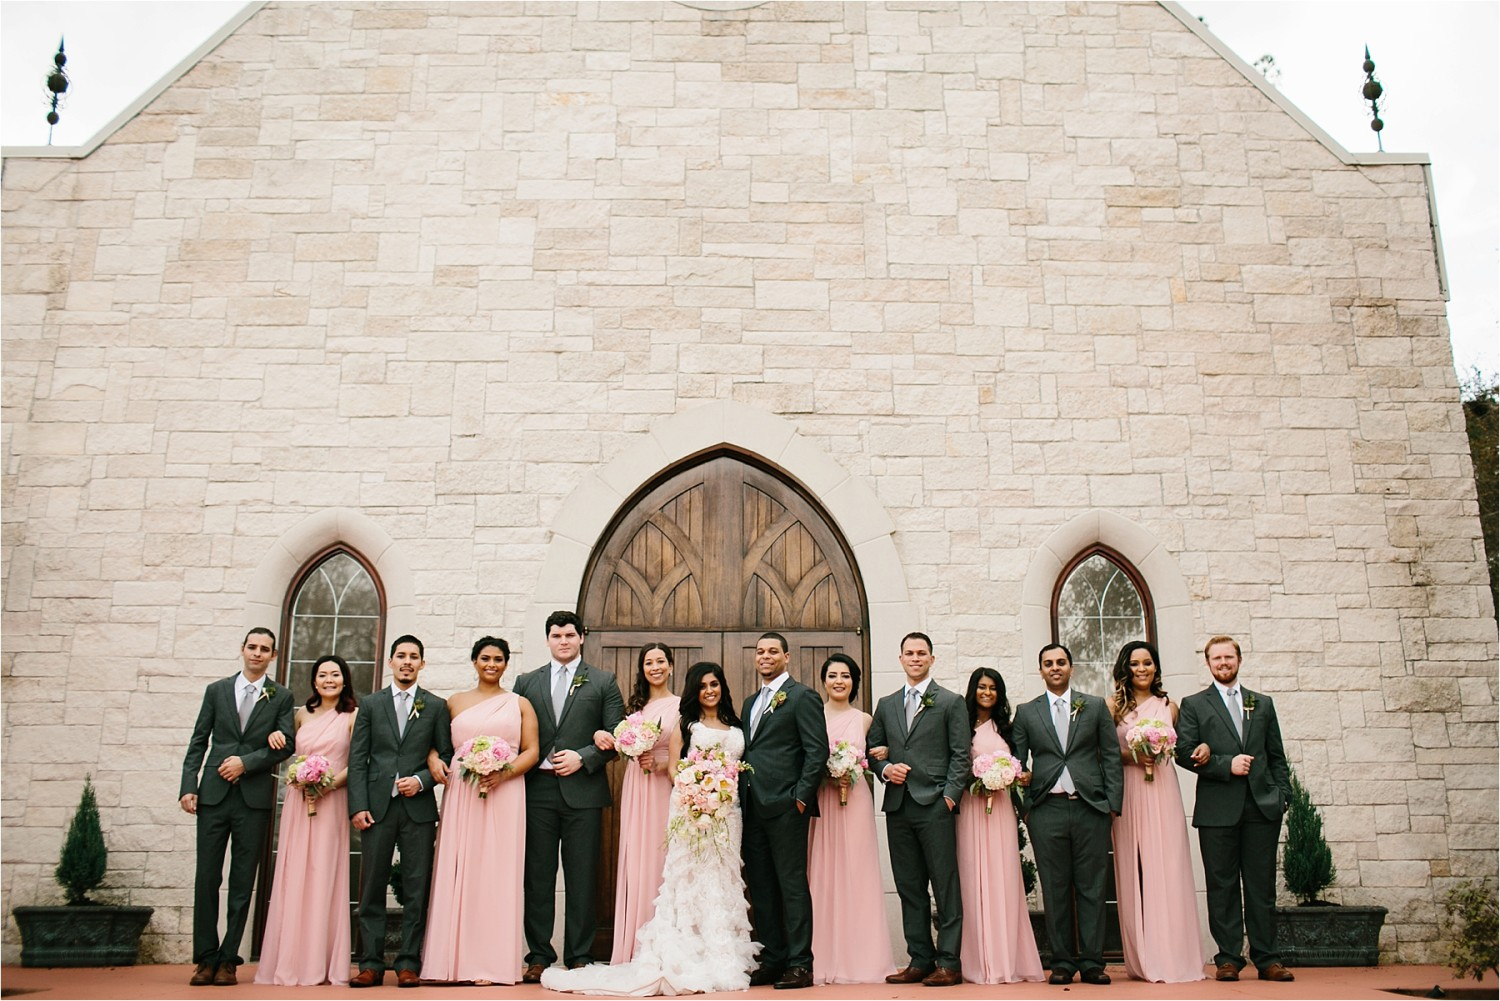 Jeanpaul + Ann __ a colorful wedding at Ashton Gardens in Houston TX by North Texas Wedding Photographer Rachel Meagan Photography _ 34